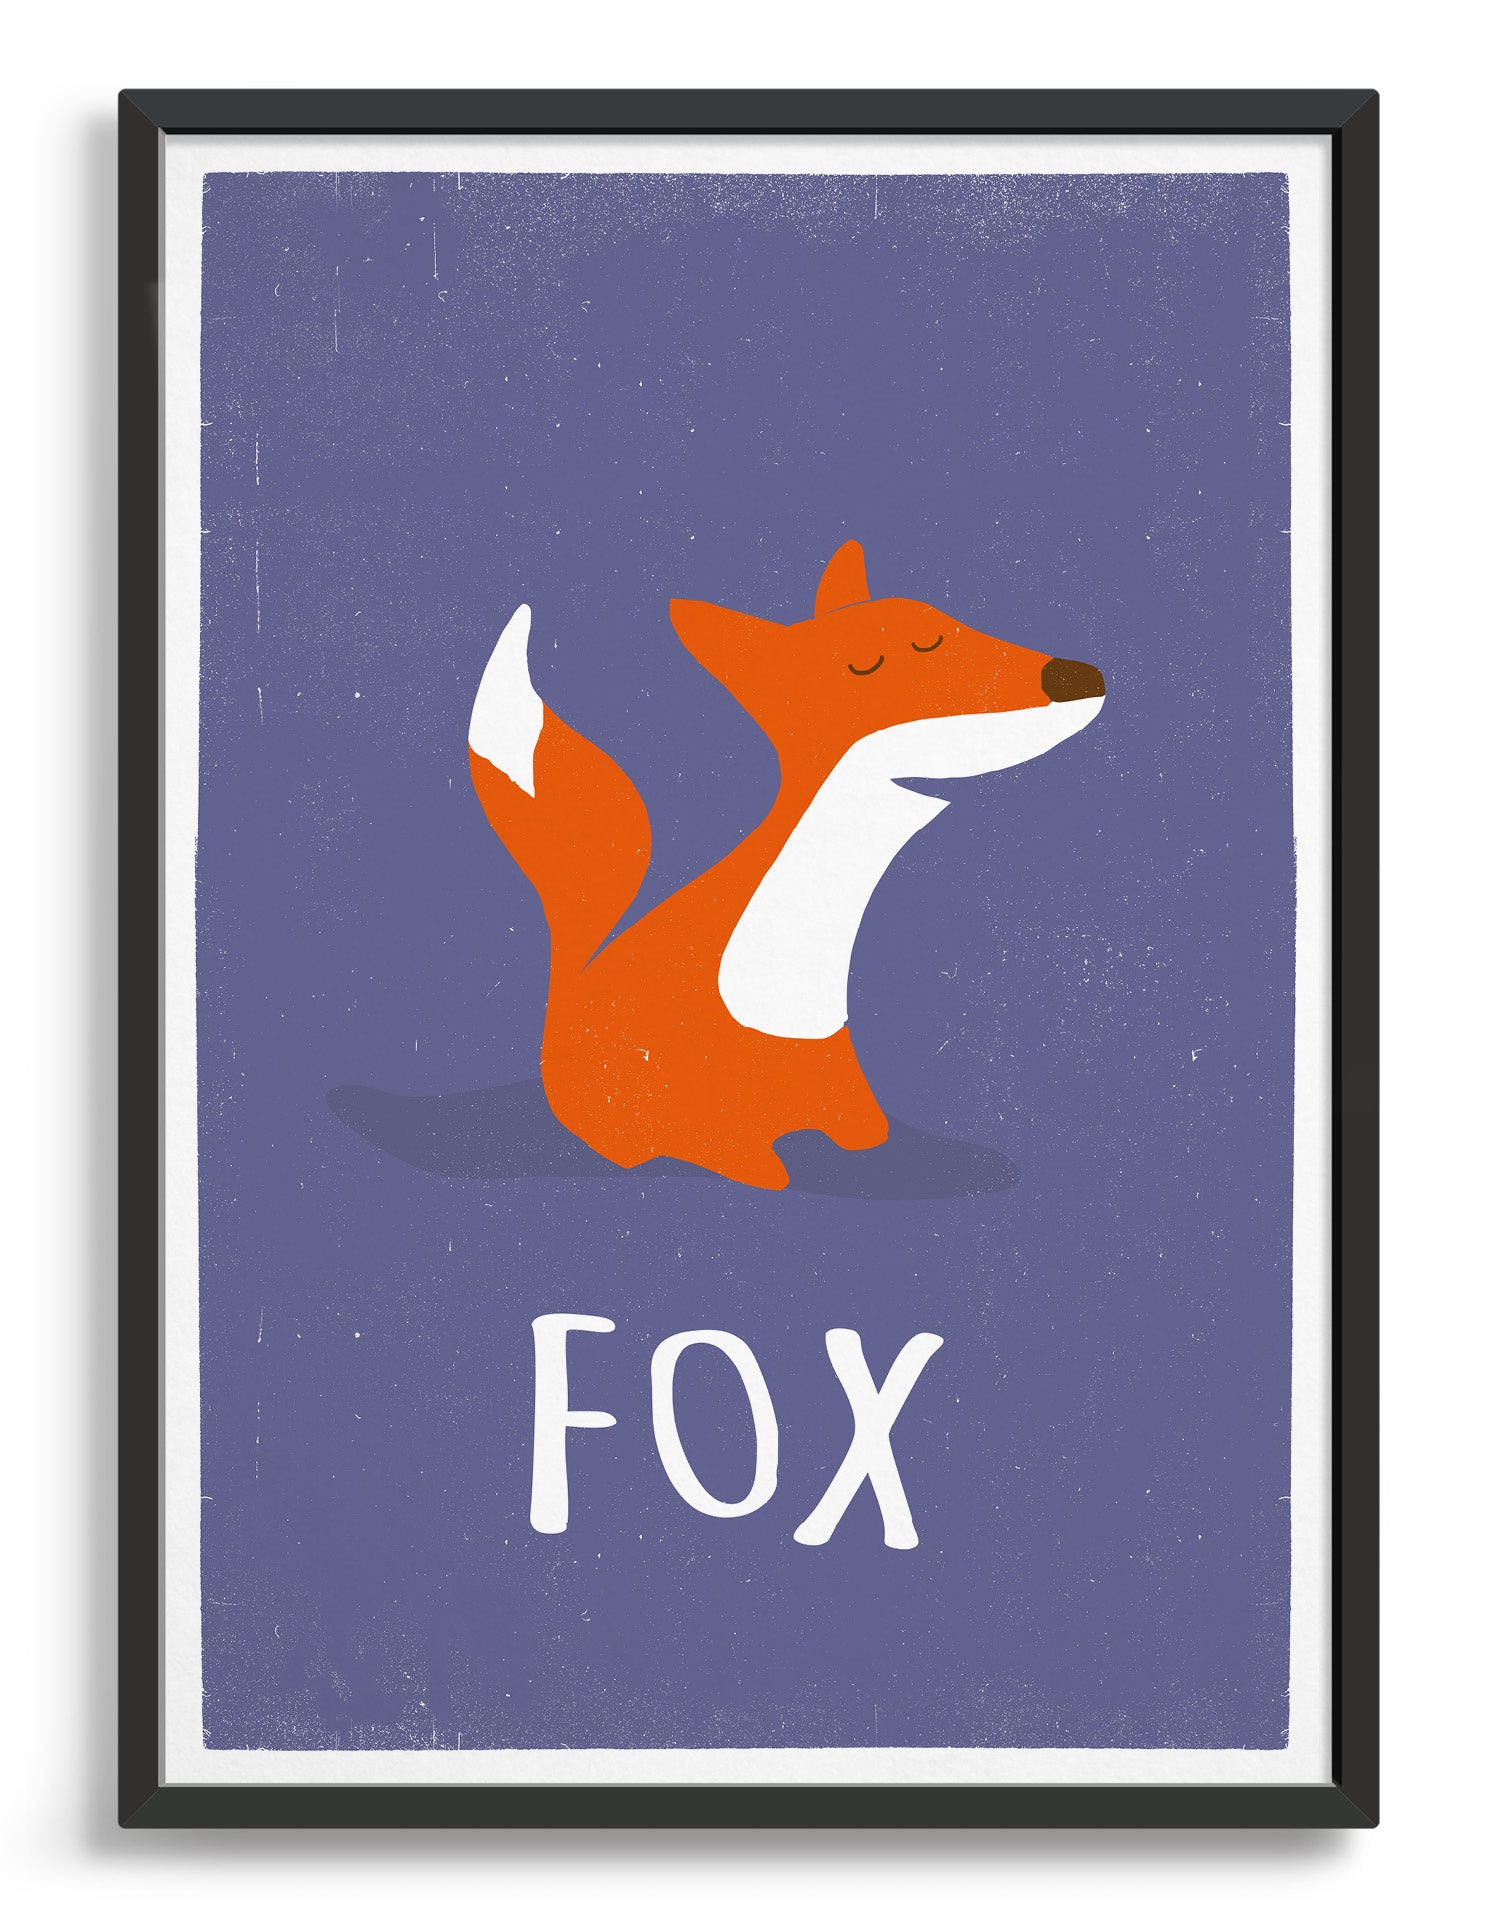 kids cute fox print on purple background with Fox underneath